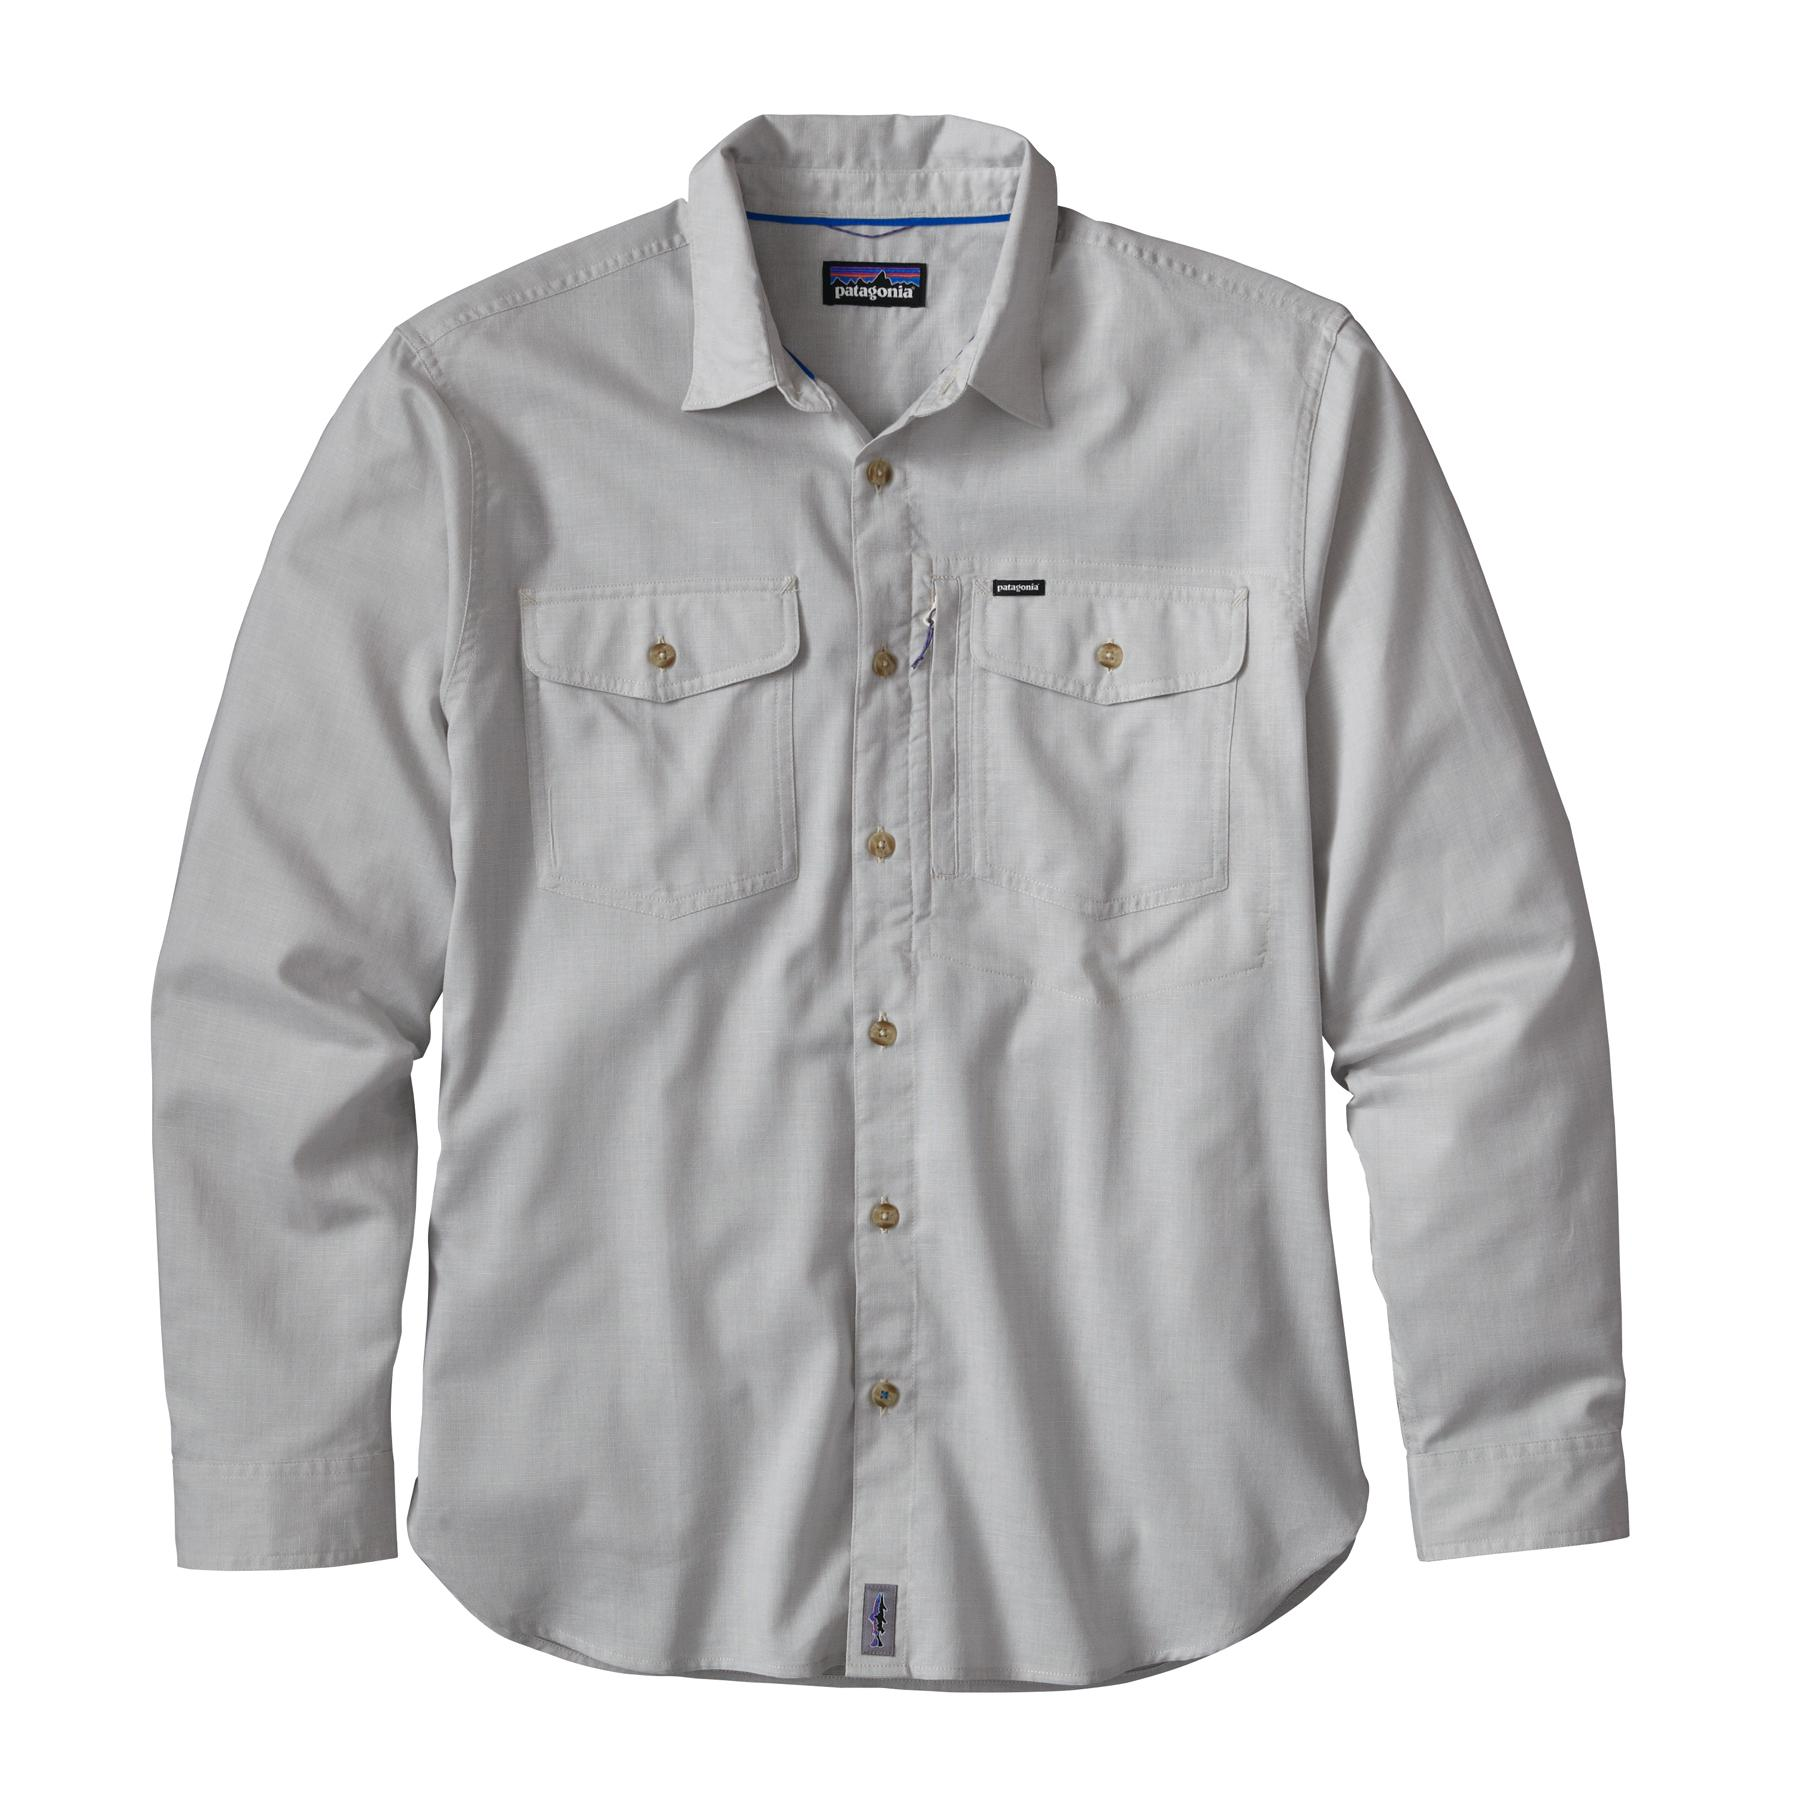 Patagonia Men's Cayo Largo L/S Shirt MRDG_GREY